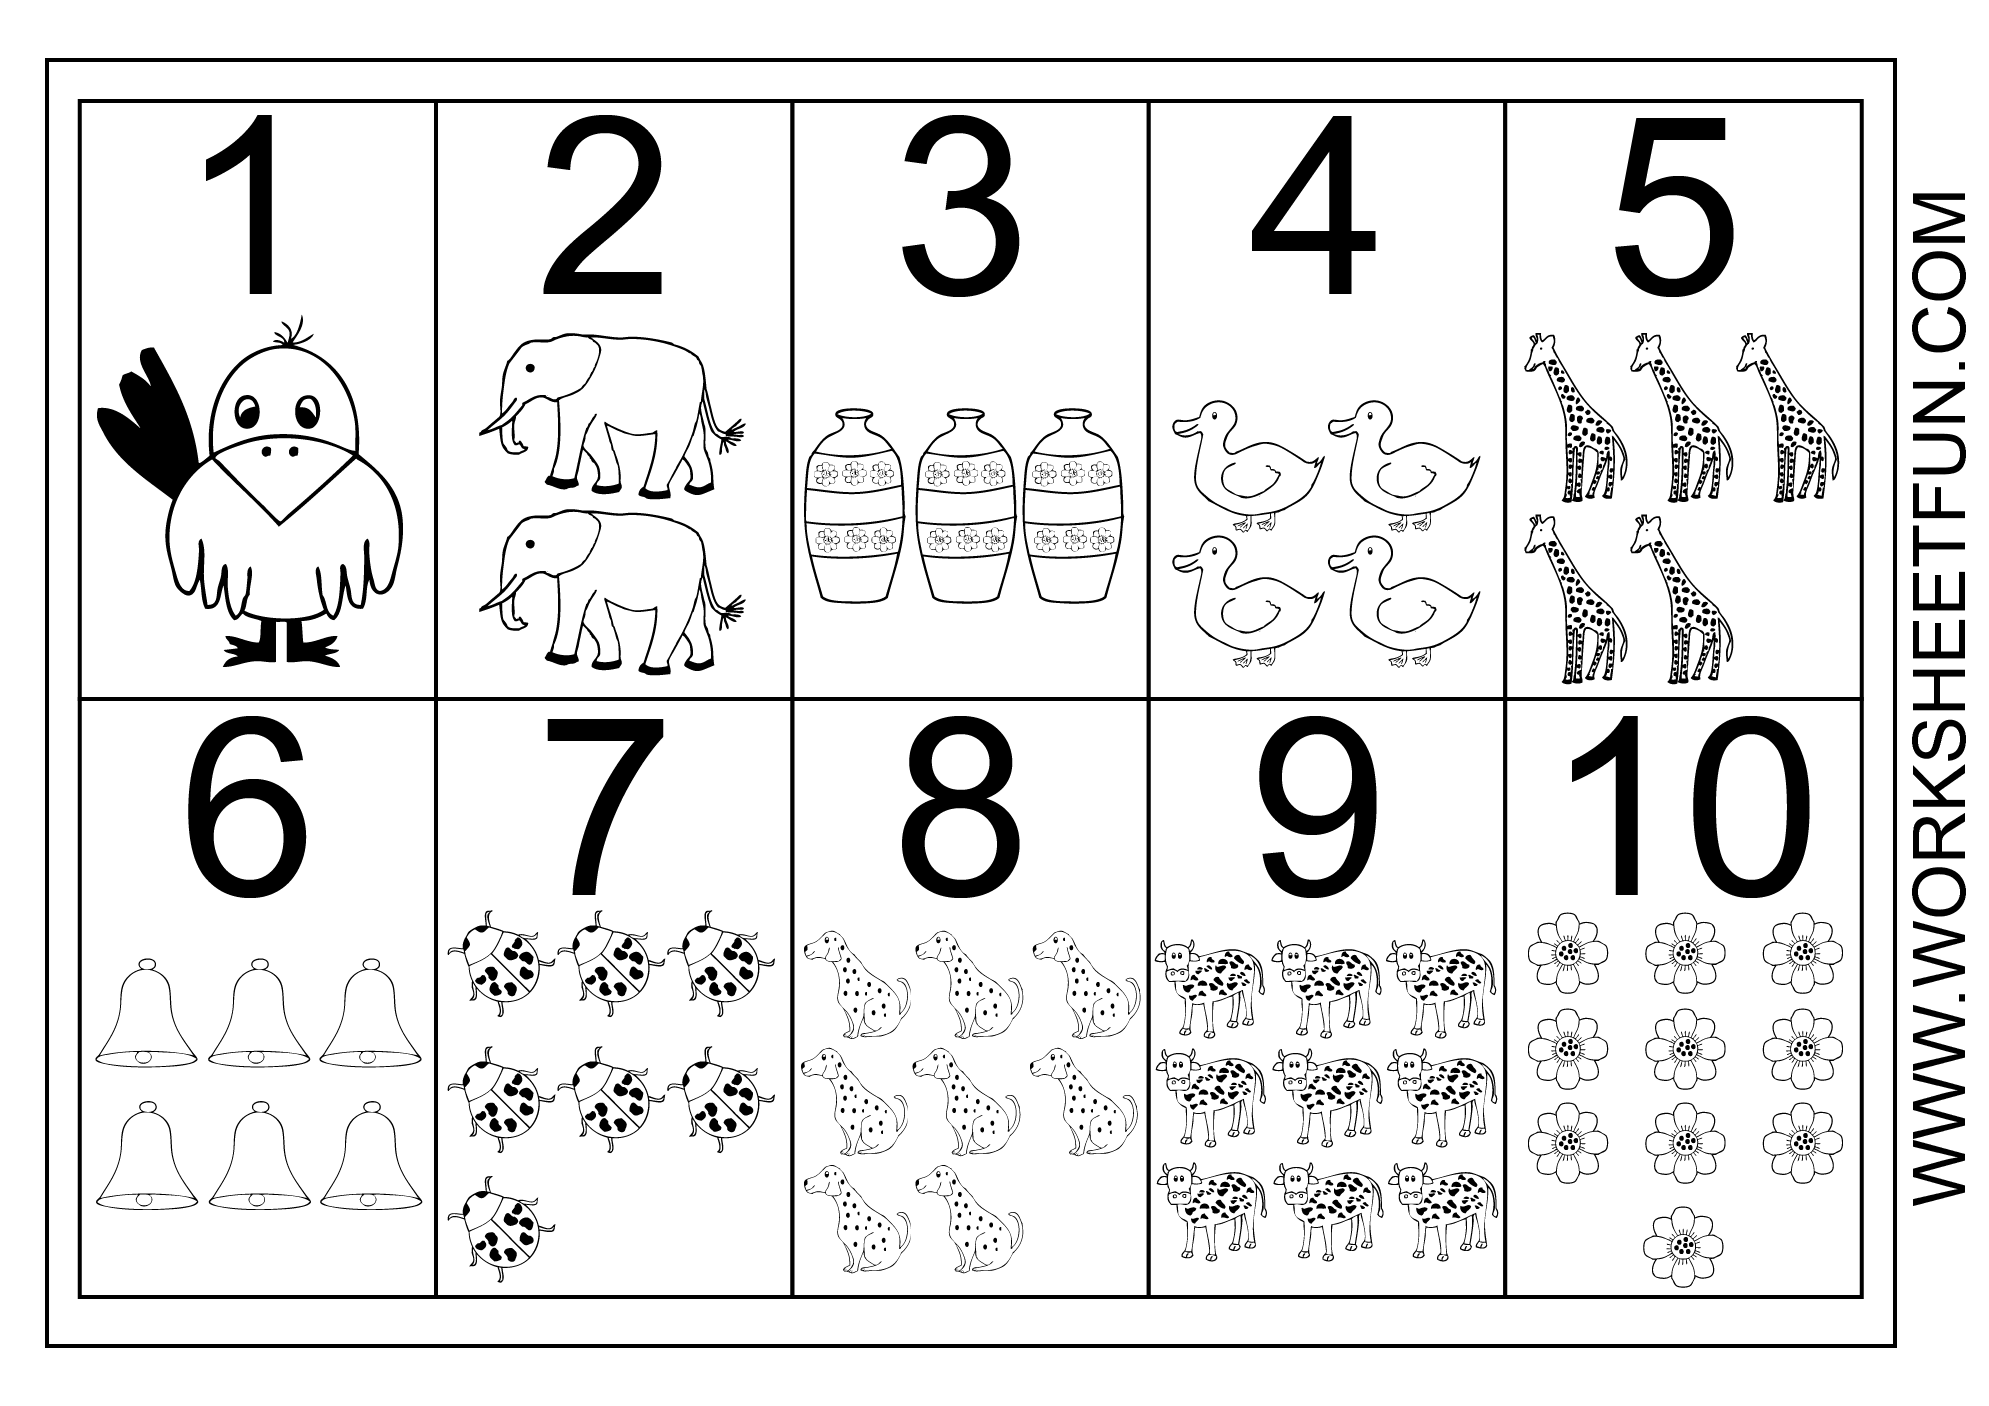 Worksheet 604780 Free Kindergarten Number Worksheets Free – Kindergarten Number Worksheets